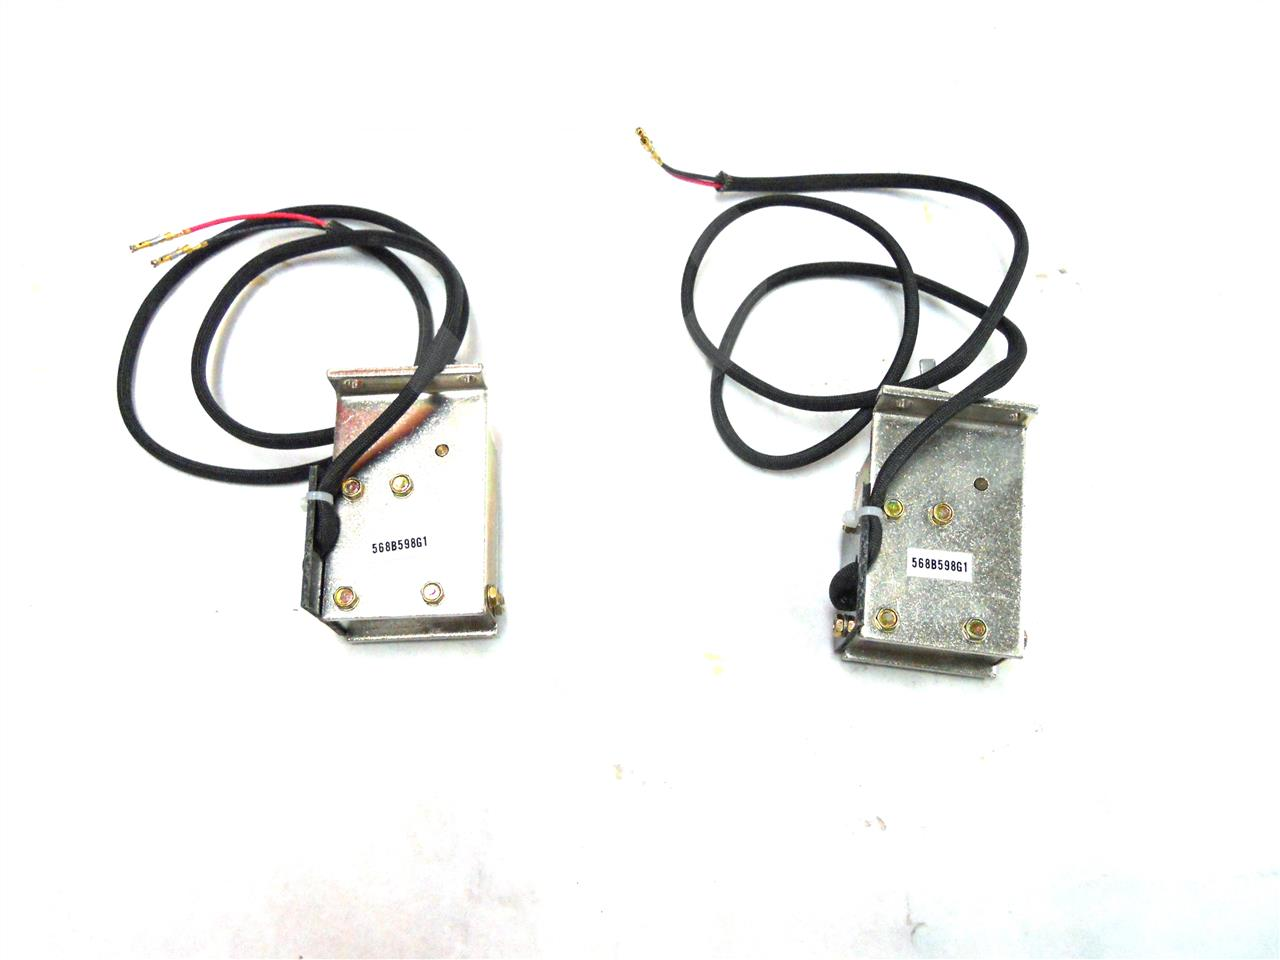 568B598G1 GE / General Electric SOLID STATE ACTUATOR, ECS / SST FOR AKR-30 / AKR-50